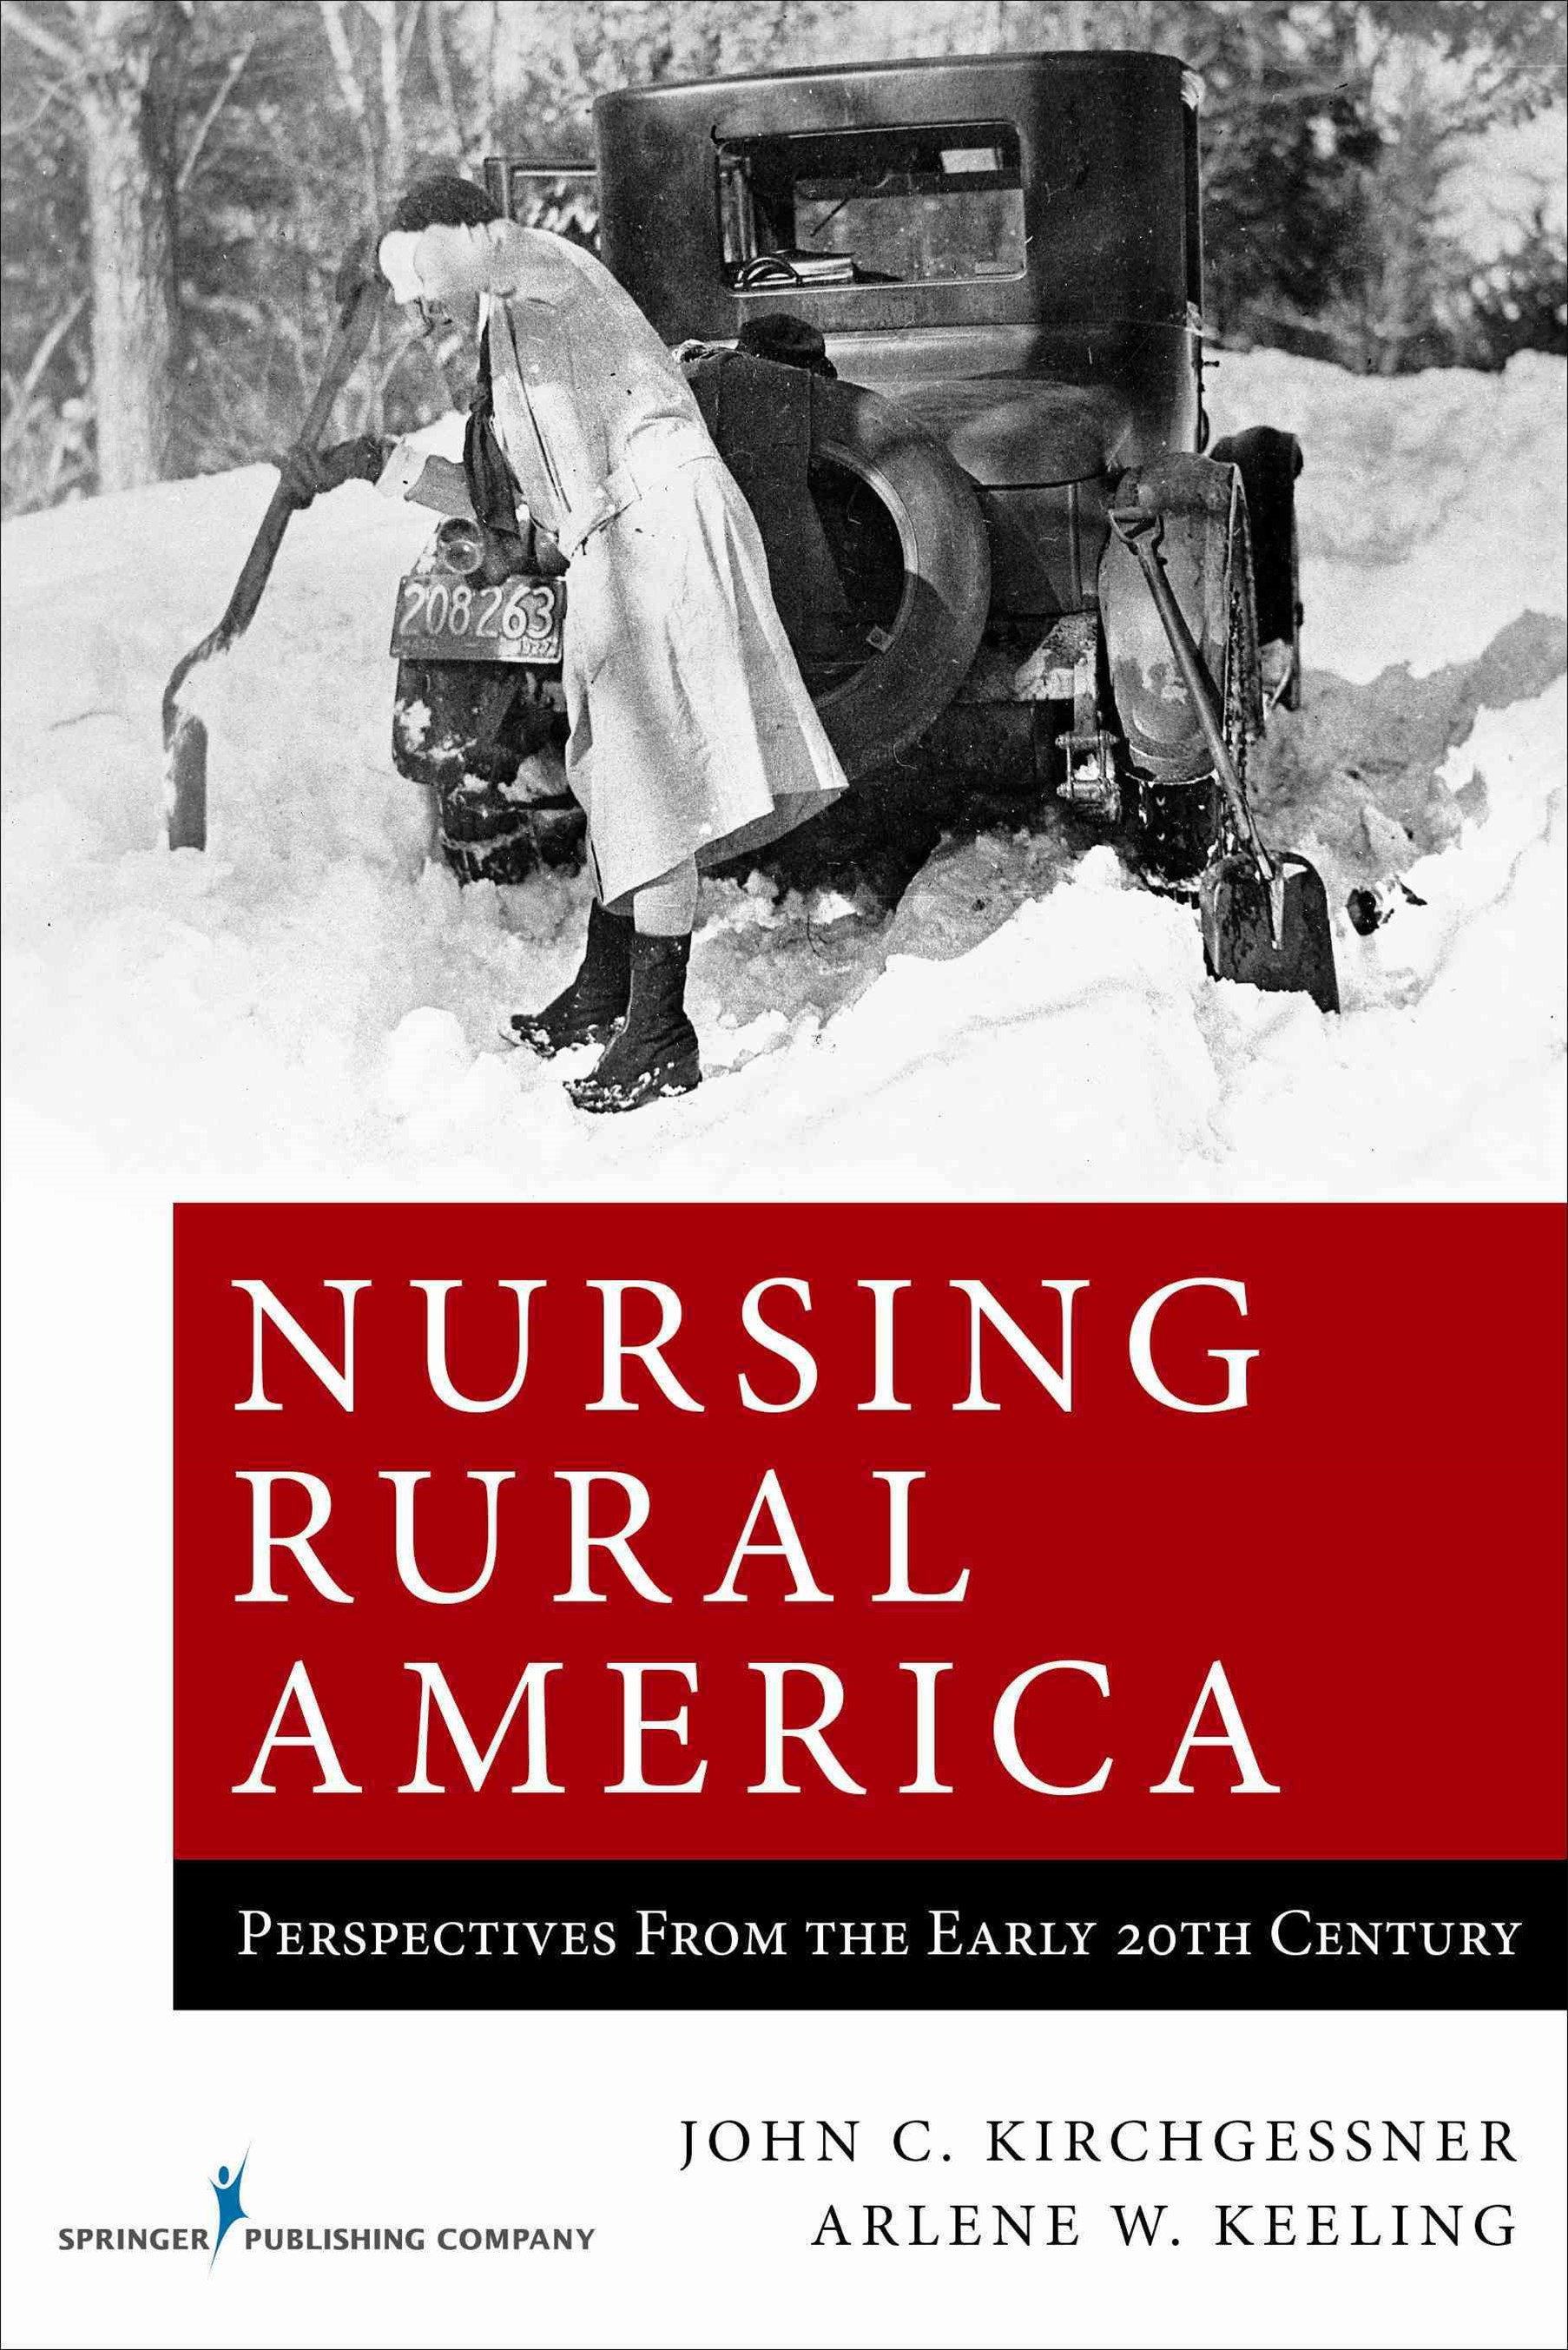 Nursing Rural America